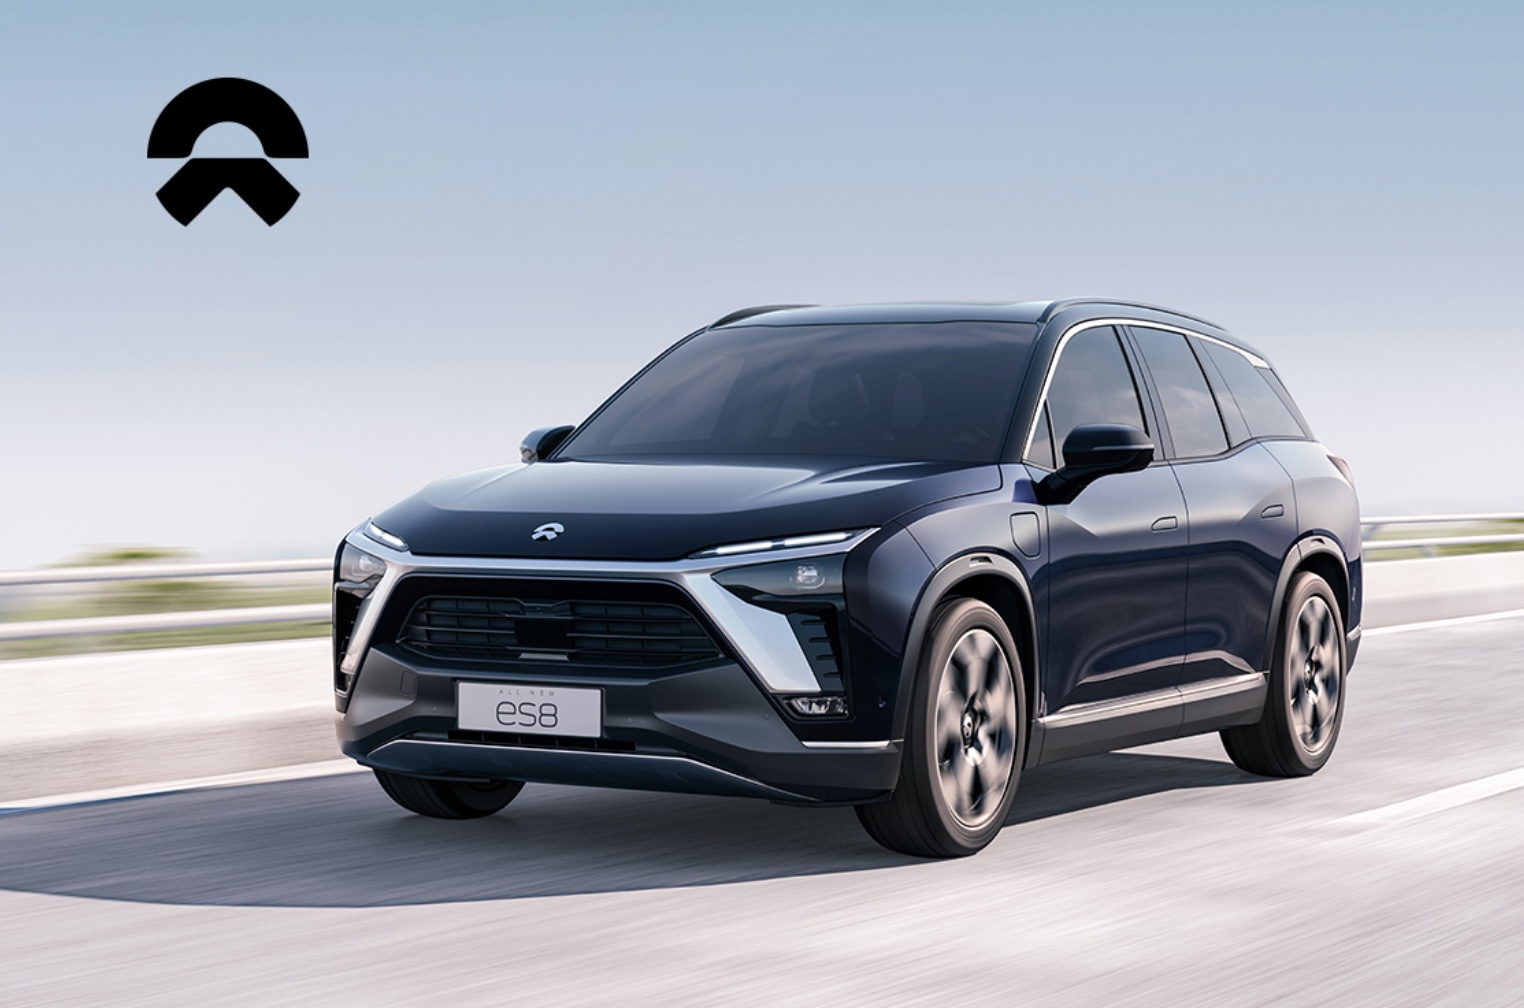 NIO in spotlight as owner claims he was charged $20,800 to replace a tire-cnTechPost